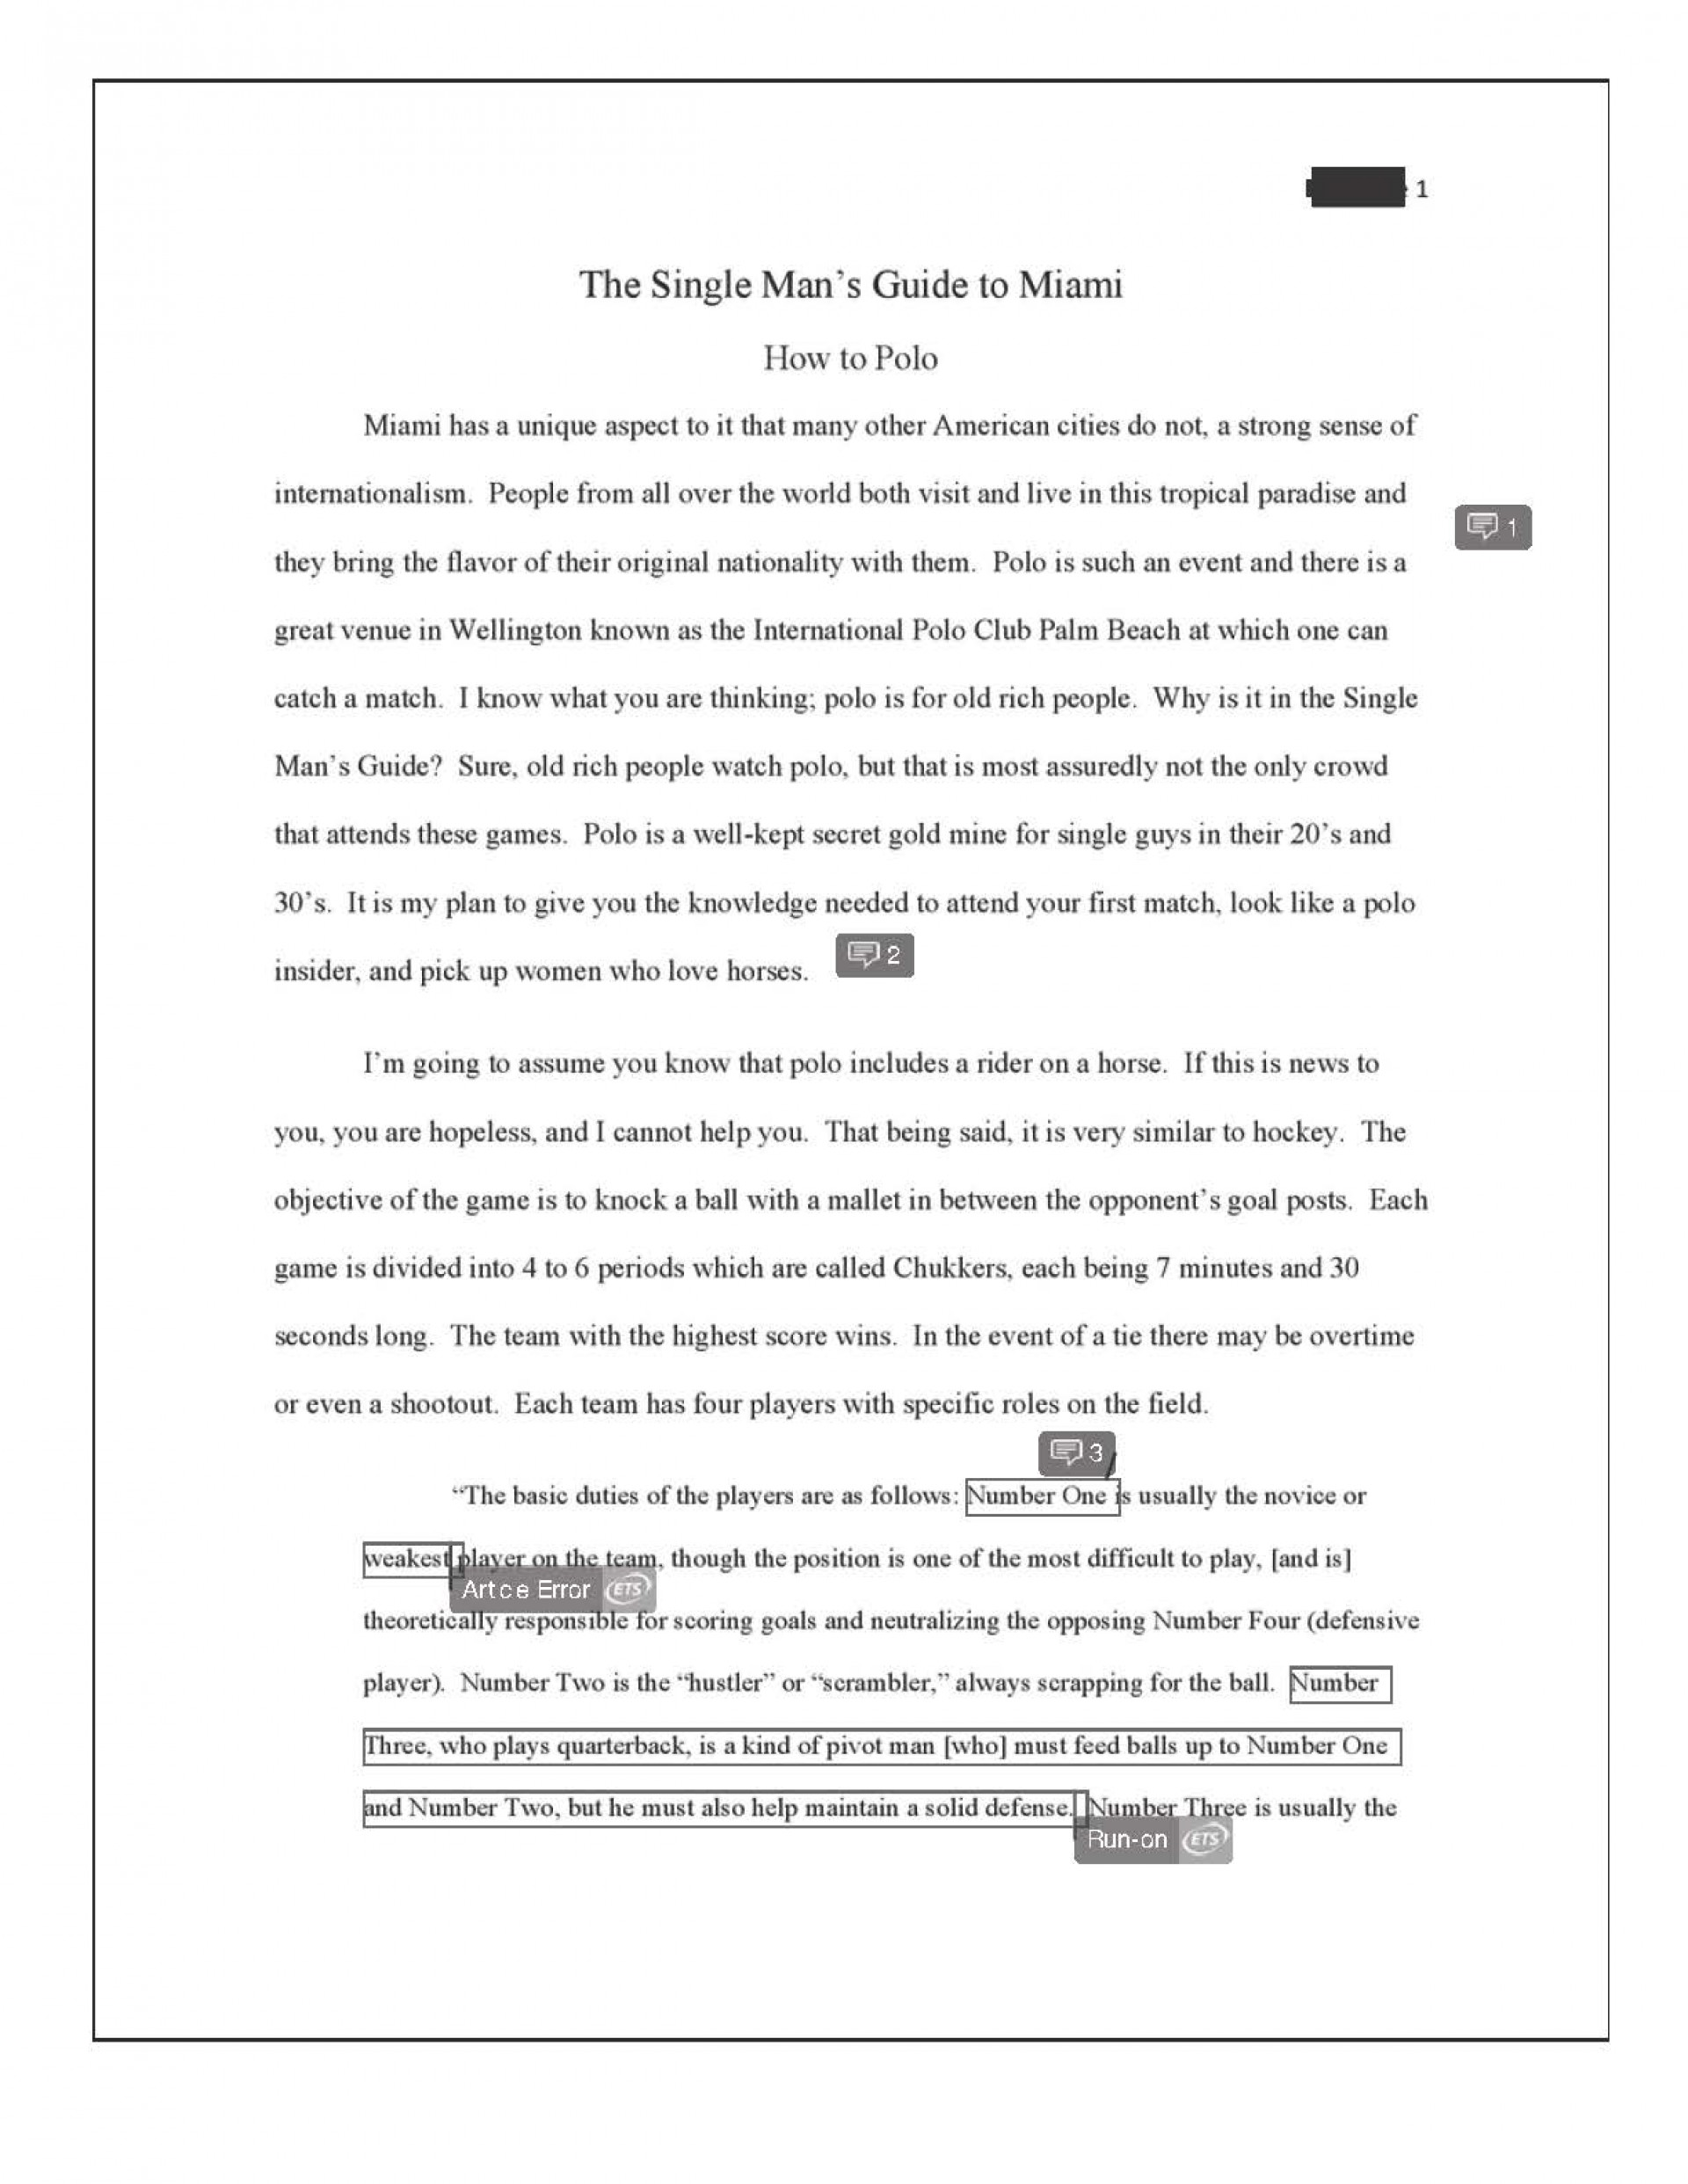 009 Informative Essay Final How To Polo Redacted Page 2 Example Introduction Frightening Examples Paragraph 1920